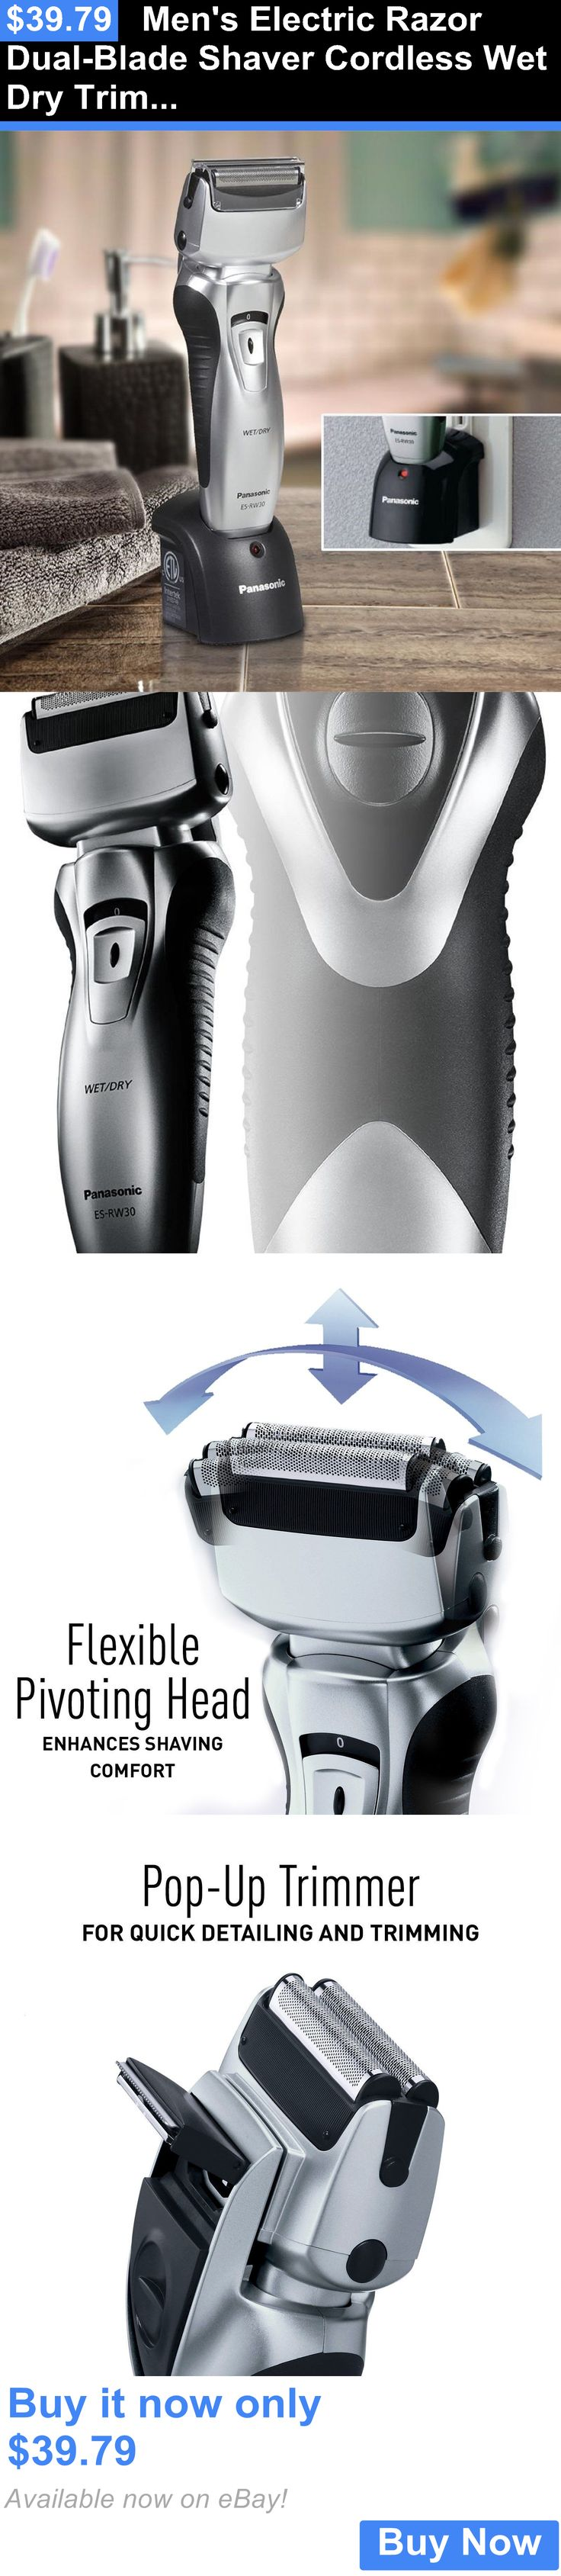 Shaving: Mens Electric Razor Dual-Blade Shaver Cordless Wet Dry Trimmer Panasonic BUY IT NOW ONLY: $39.79